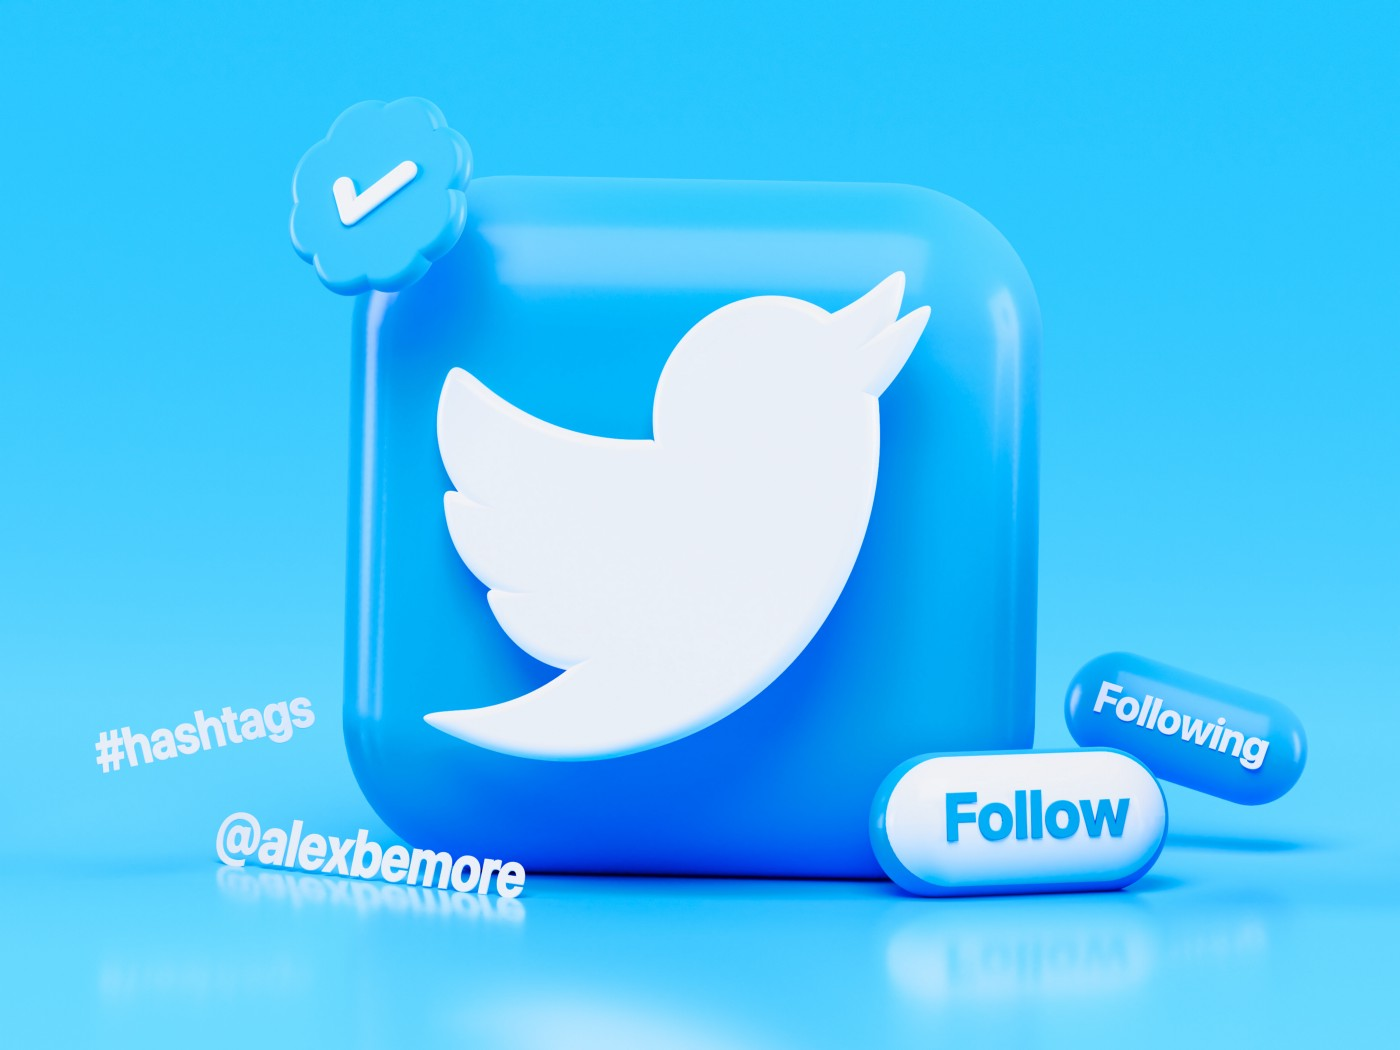 A title image of a big Twitter app icon in Twitter blue and other Twitter related icons next to it.